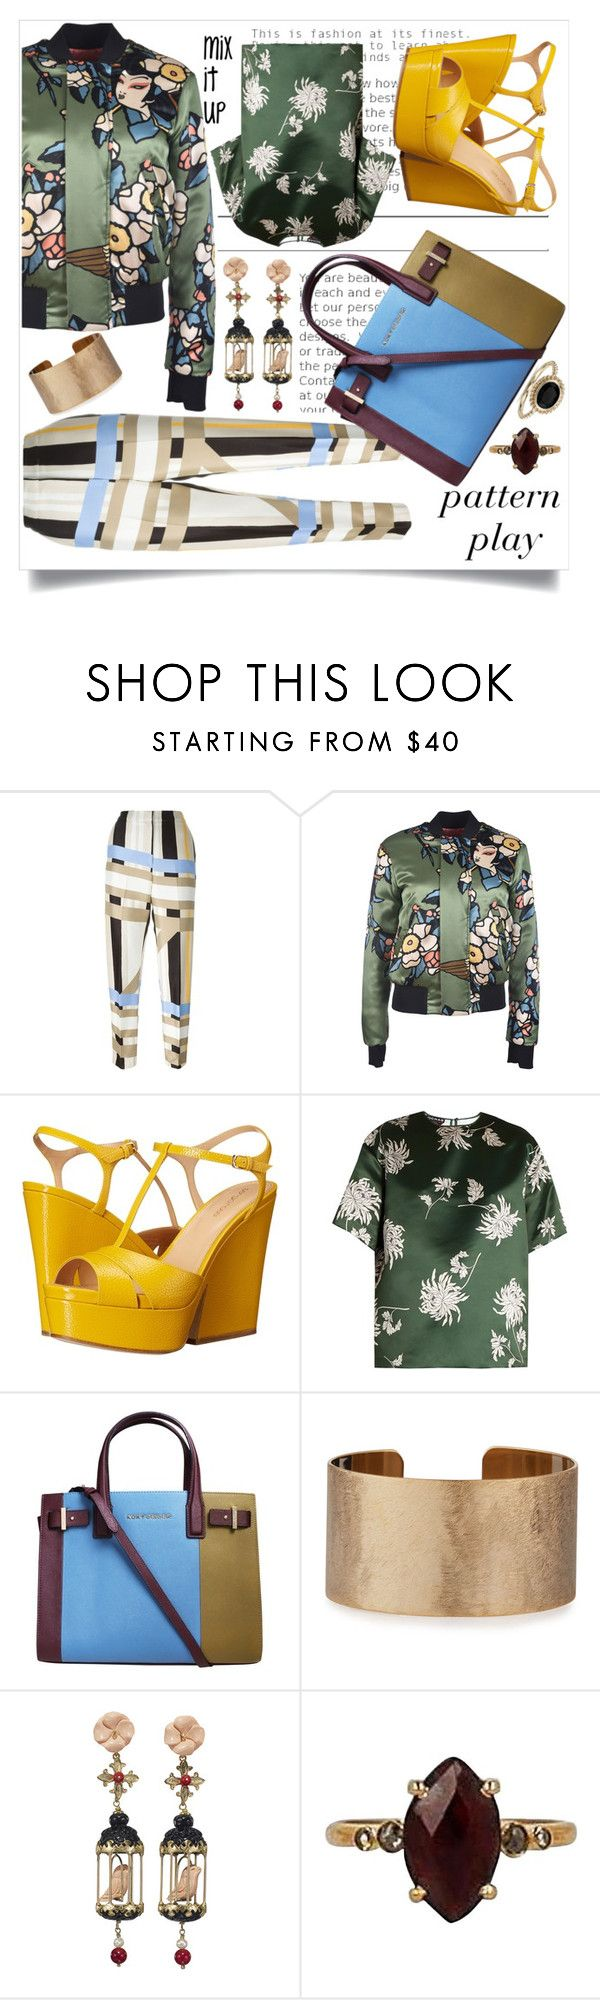 """""""Funk you right on up!"""" by ladybug71181 ❤ liked on Polyvore featuring MSGM, Dsquared2, Sergio Rossi, Rochas, Kurt Geiger, Panacea, Of Rare Origin, Chan Luu and Blue Nile"""